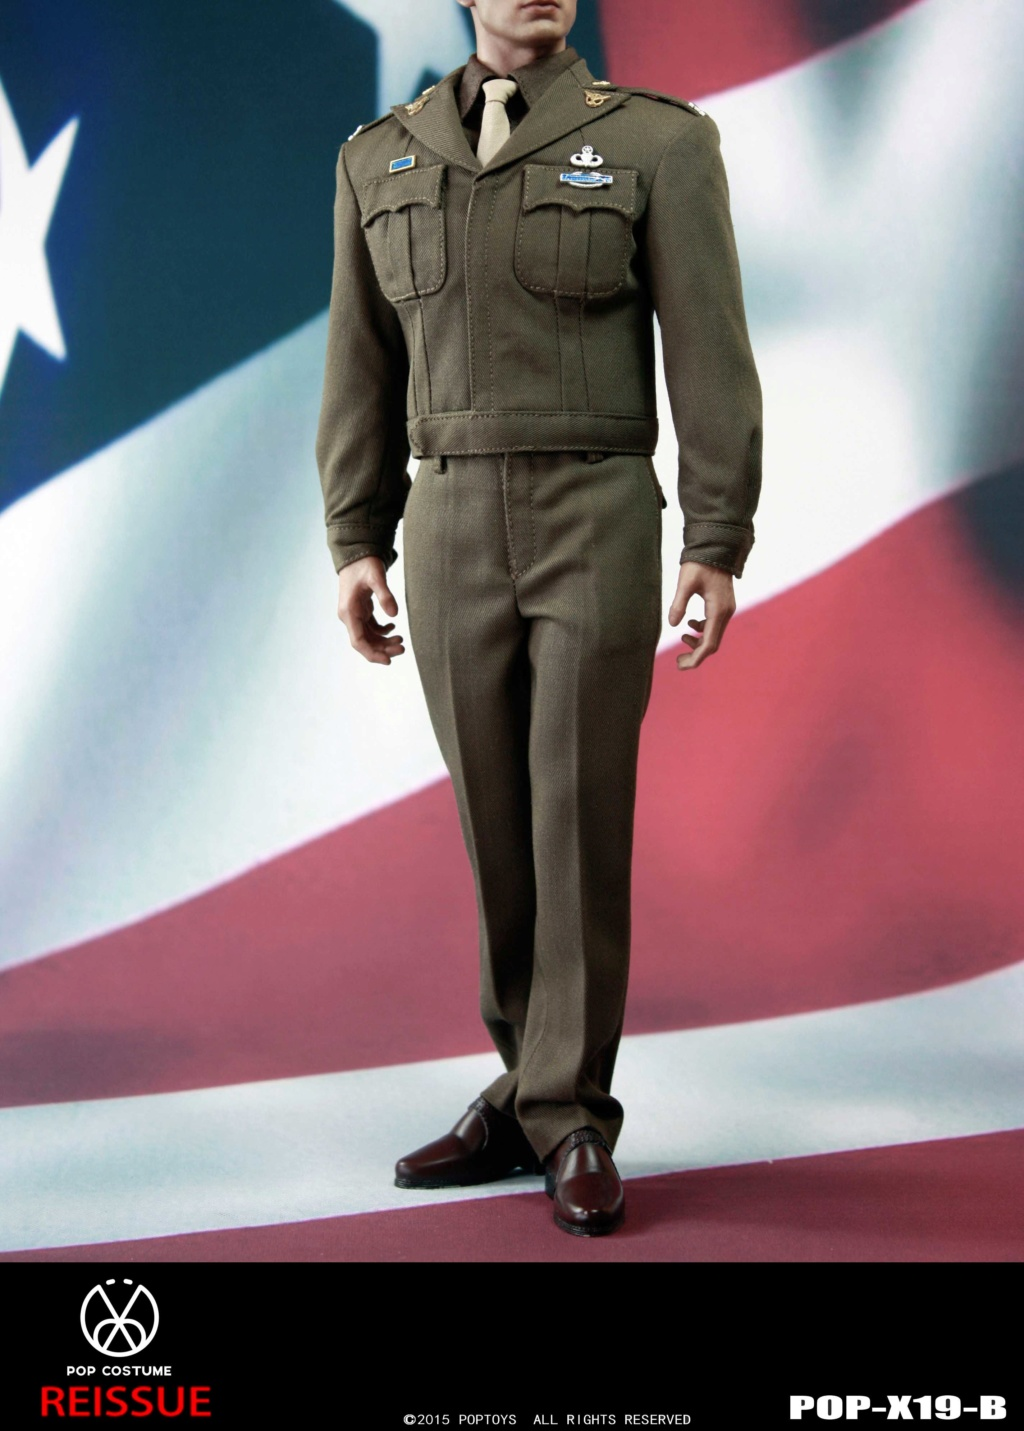 male - NEW PRODUCT: POPTOYS: 1/6 Series X19 - World War II Golden Age US Army Uniform Uniform Set - B (Reprinted in 2019) 21301910